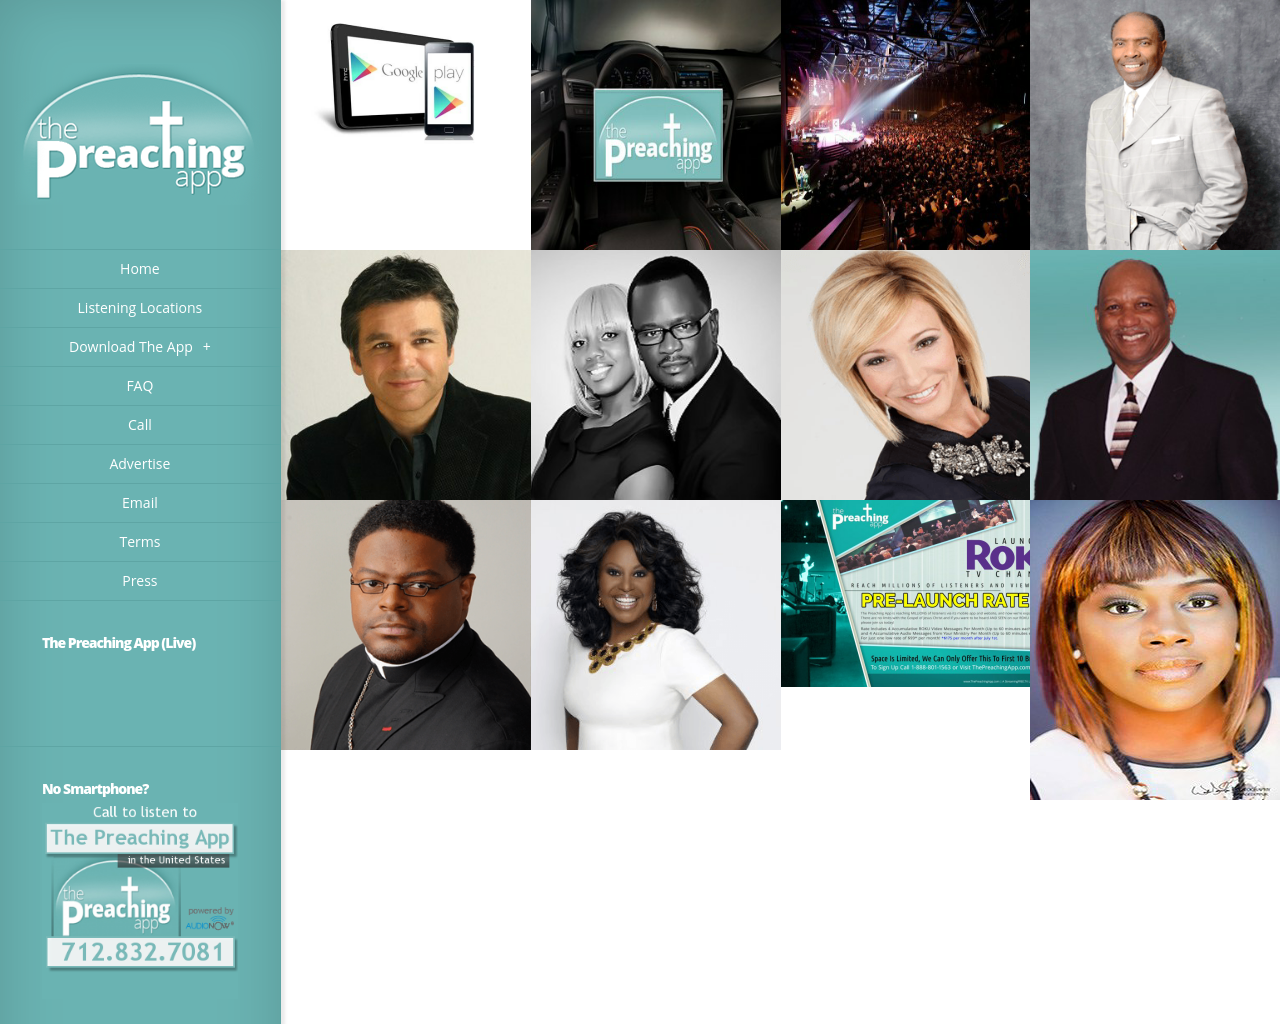 The-Preaching-App-Advertising-Reviews-Pricing